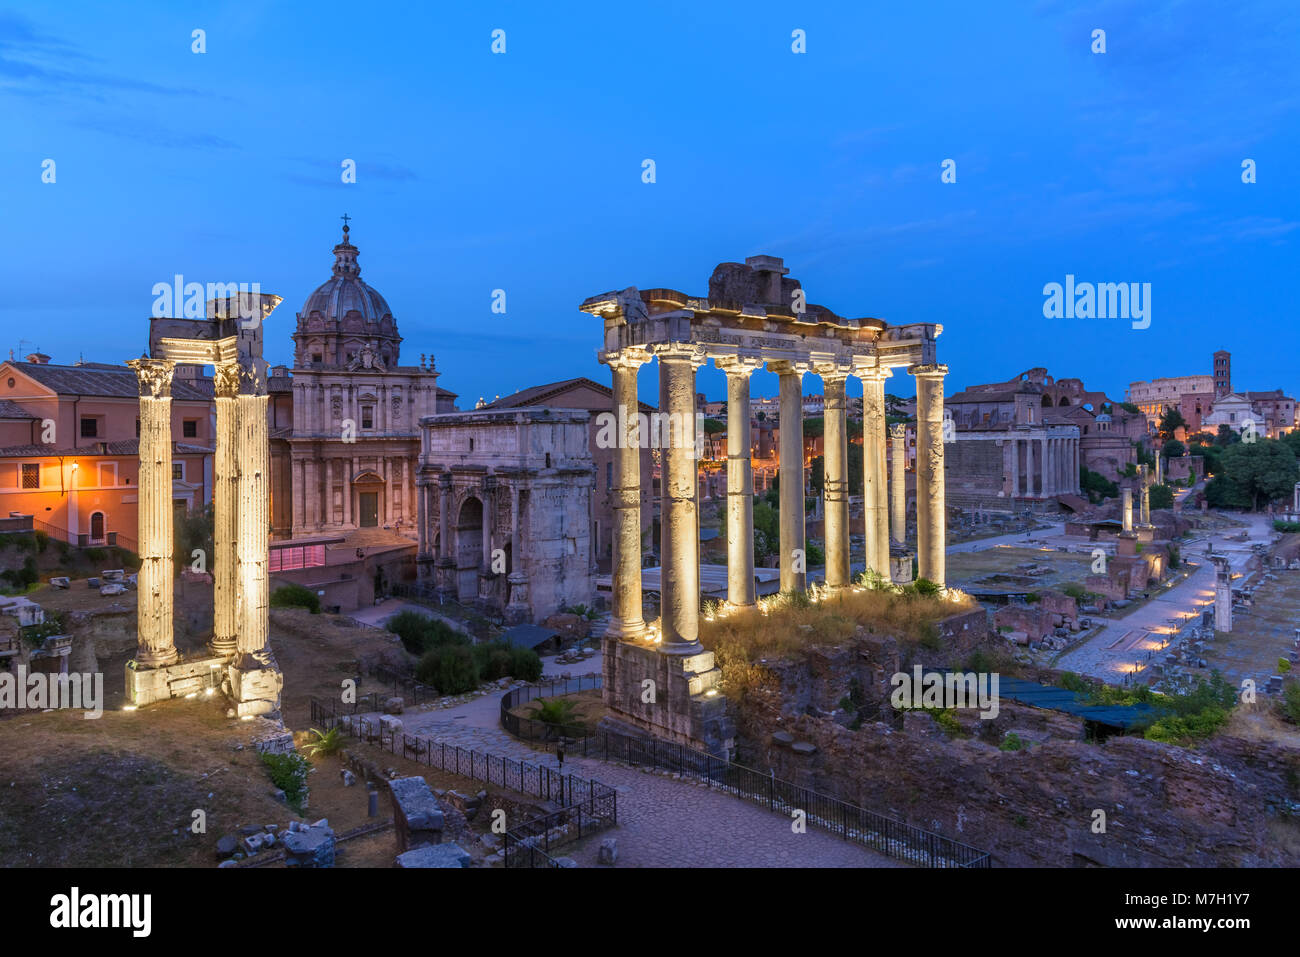 Dusk view of Roman Forum looking East, Rome, Italy - Stock Image